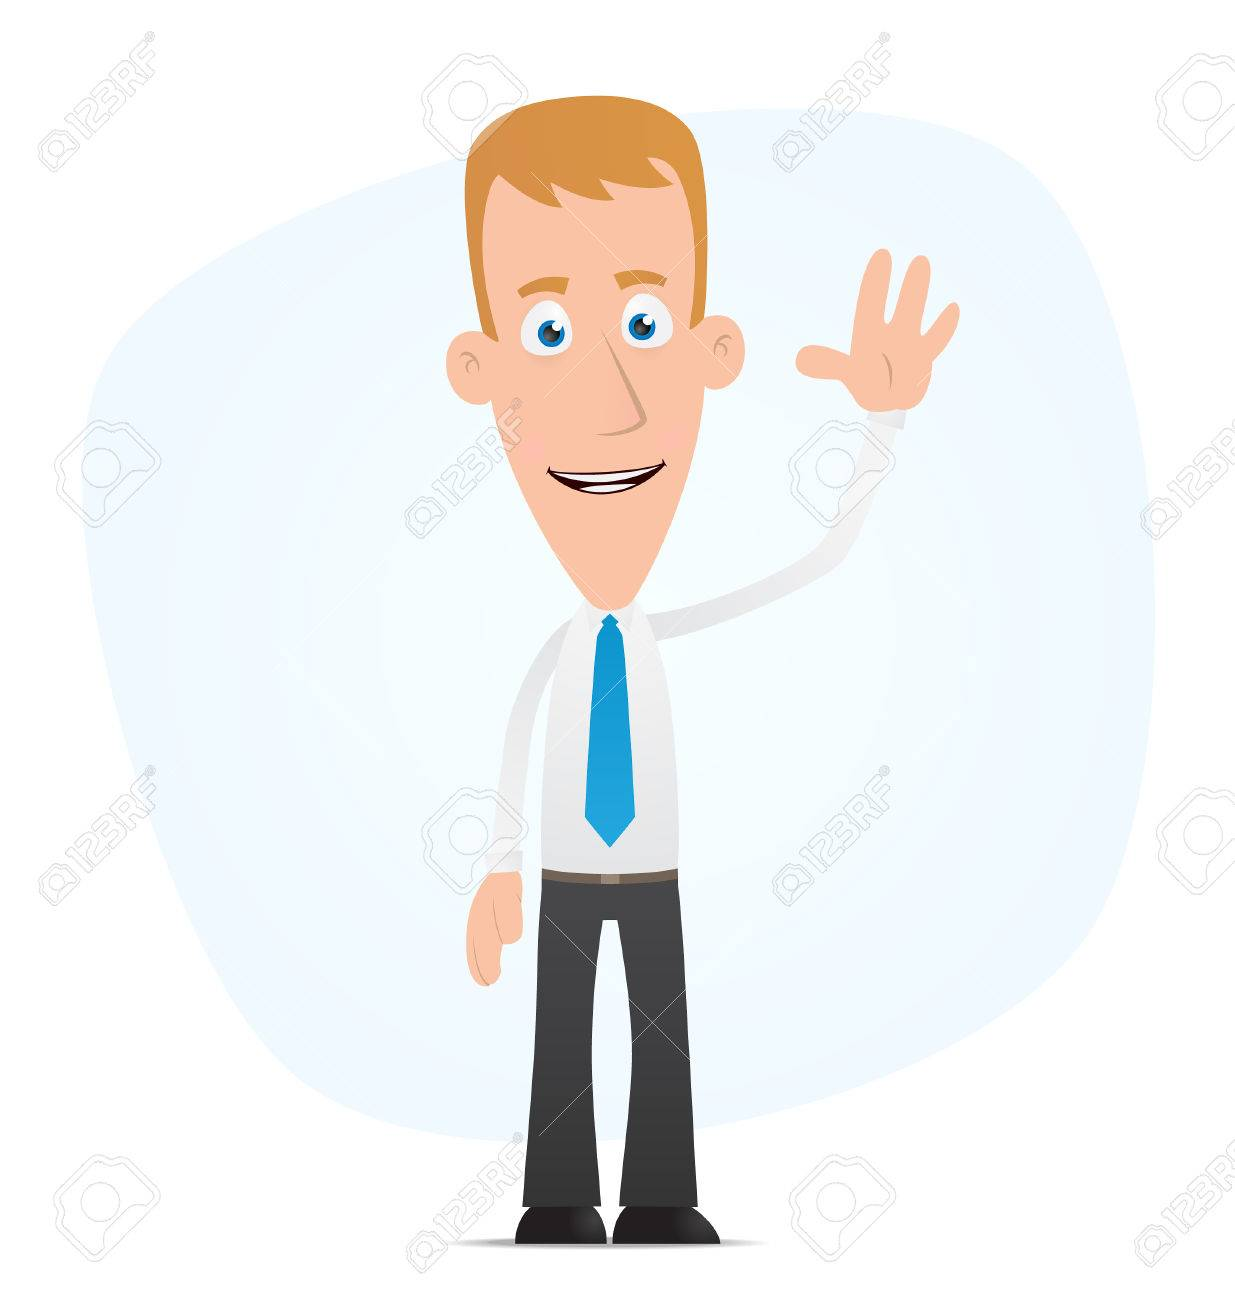 Illustration of a cartoon cute character for use in presentations, etc. Stock Vector - 7234769